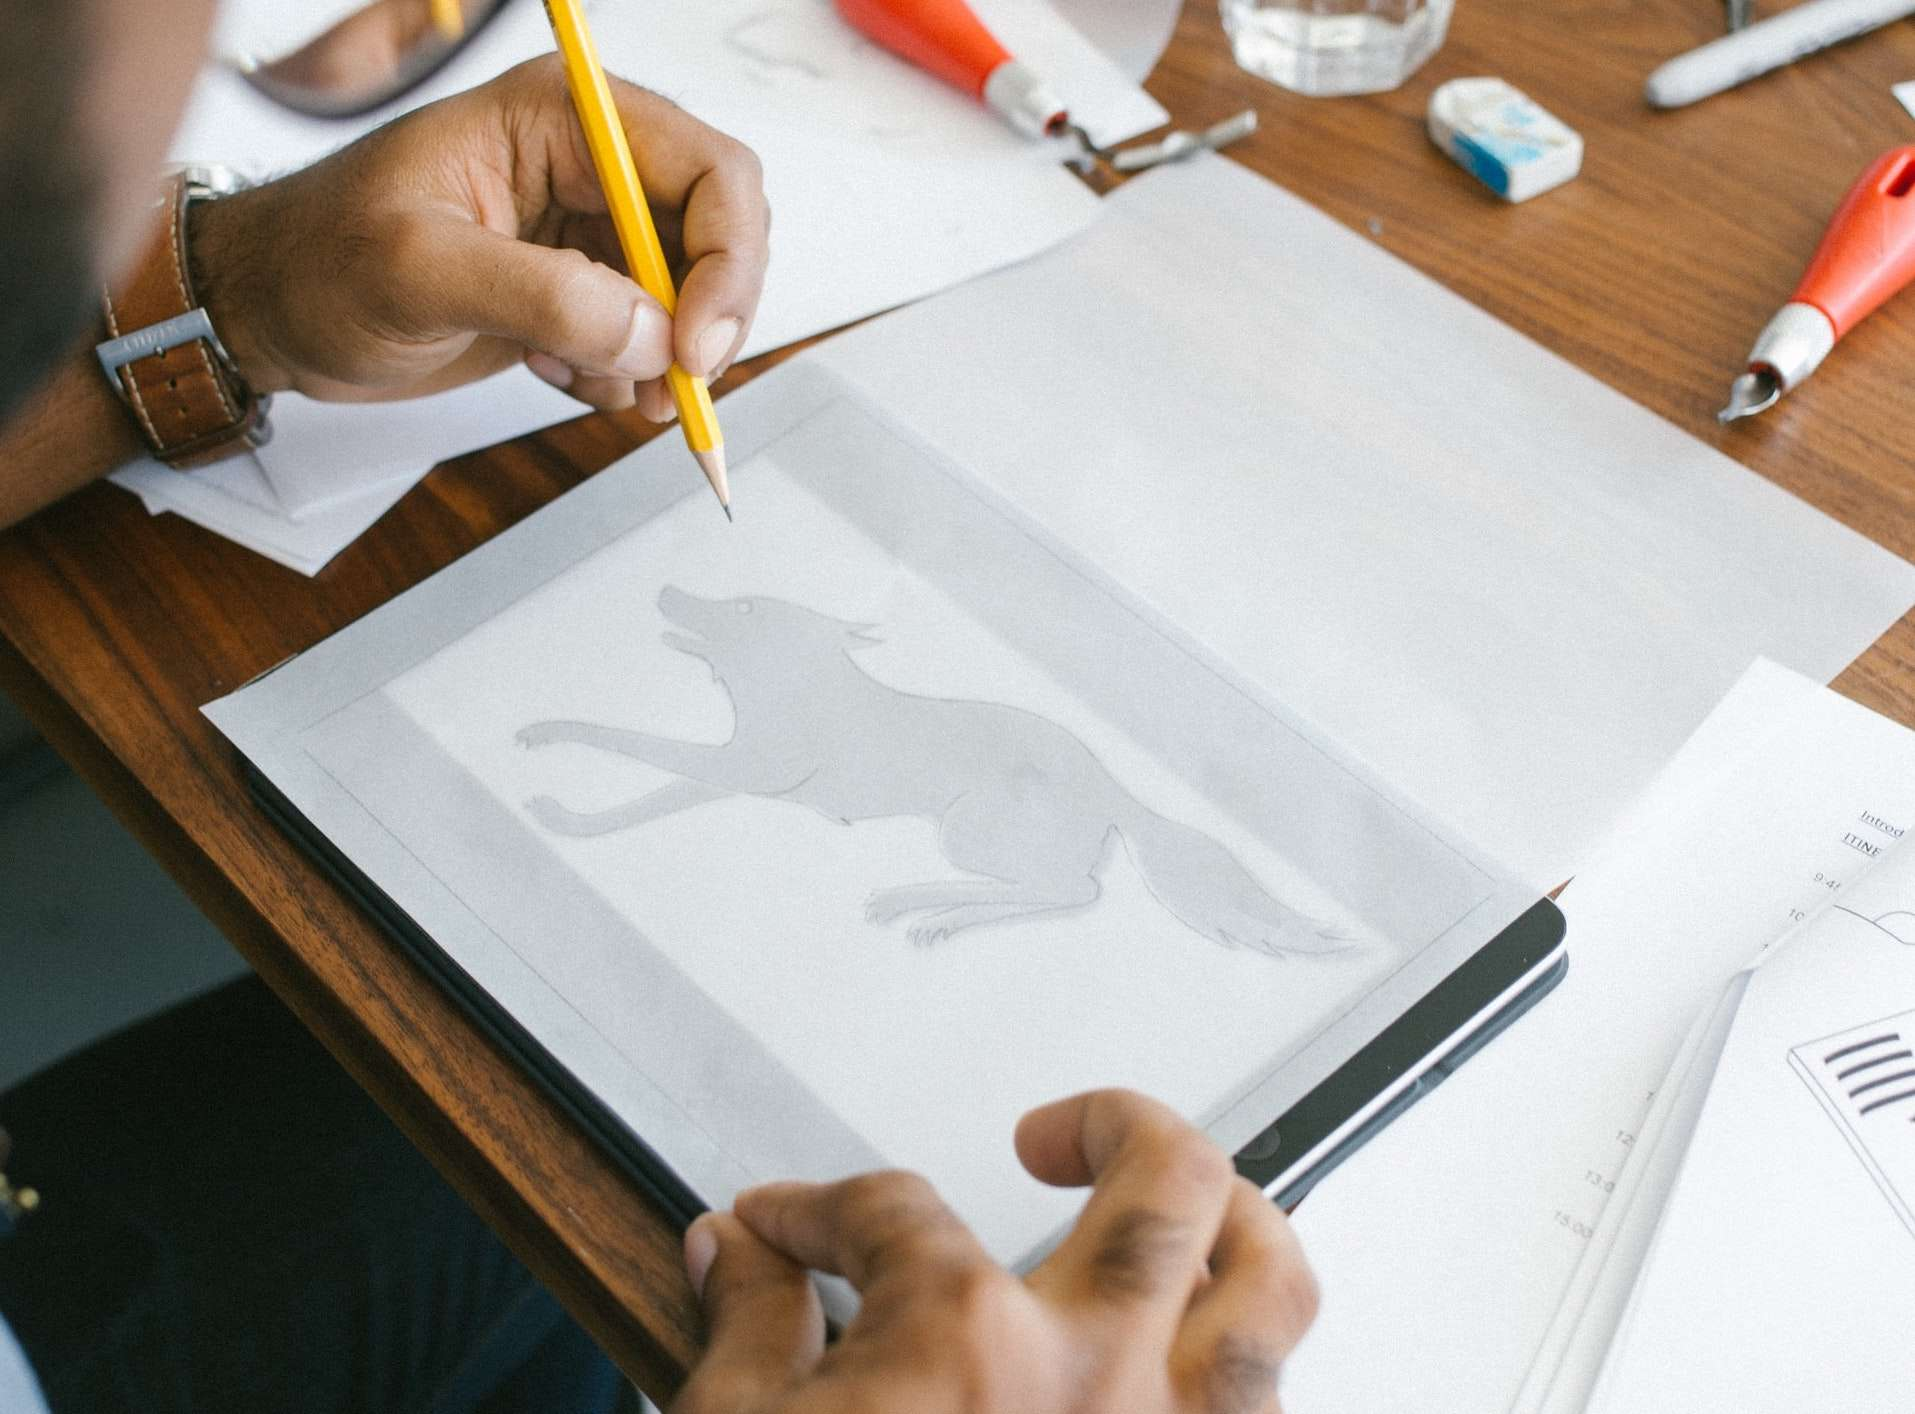 how to become an illustrator without a degree